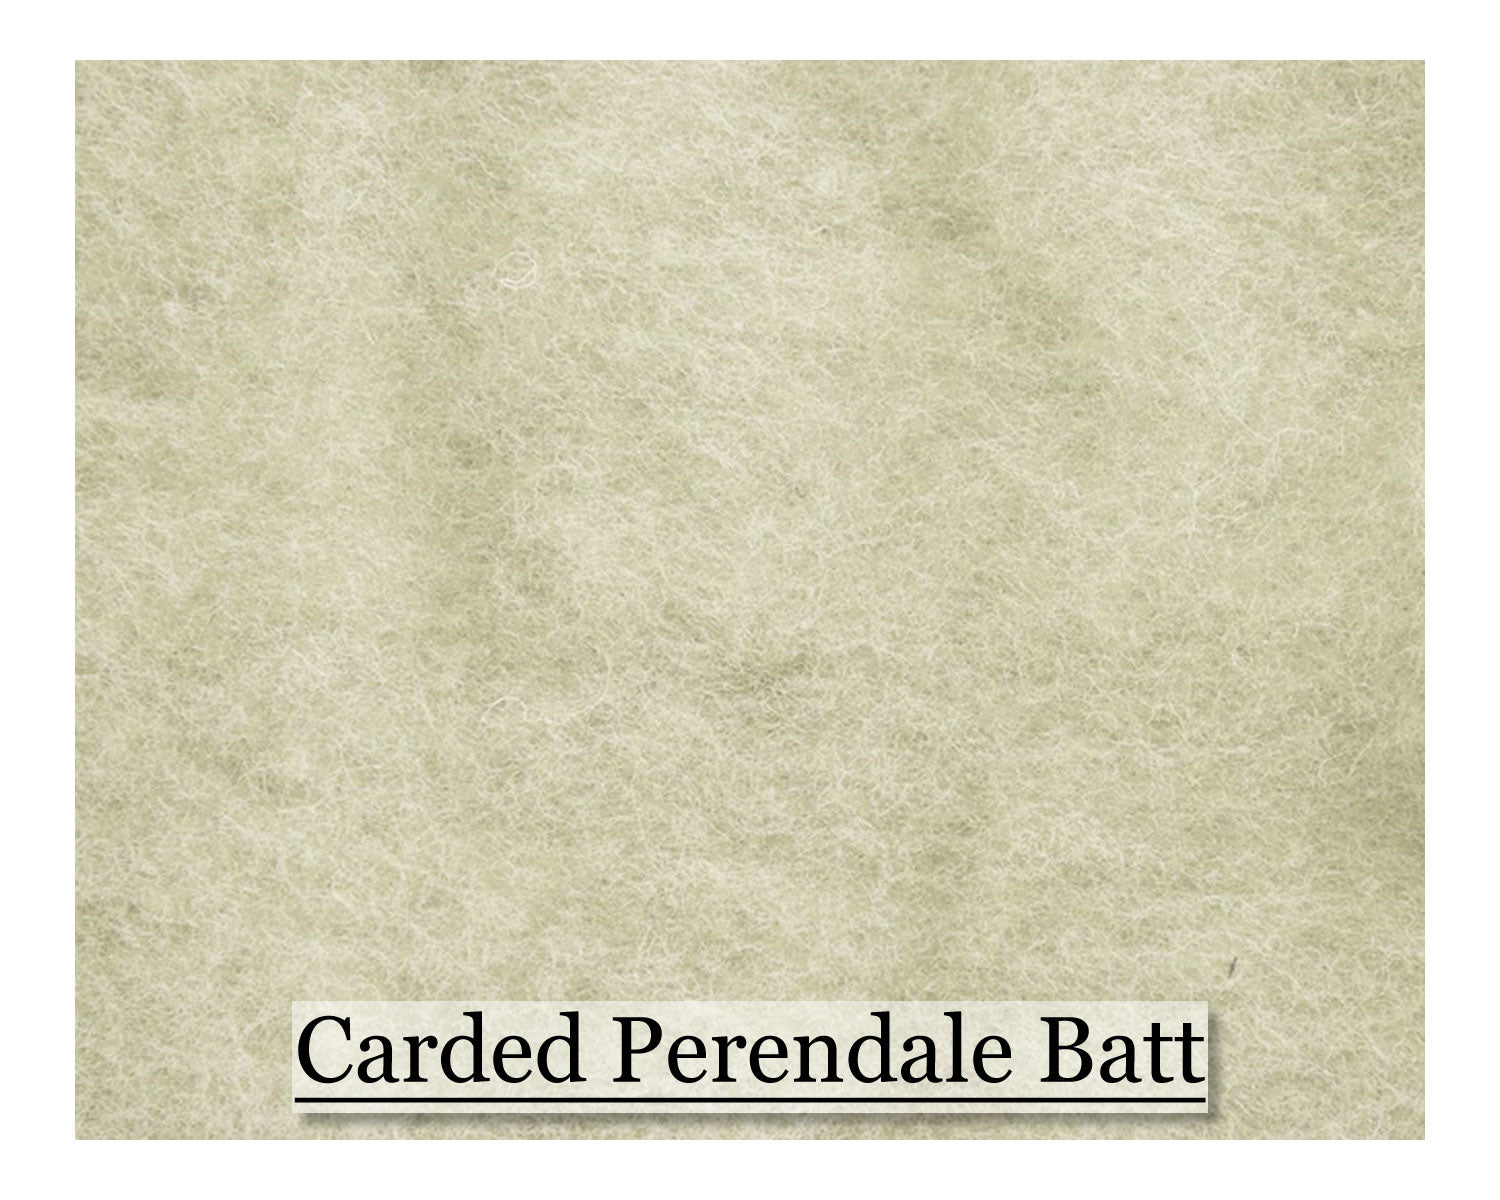 Perendale Batt - Natural White - 200 grams